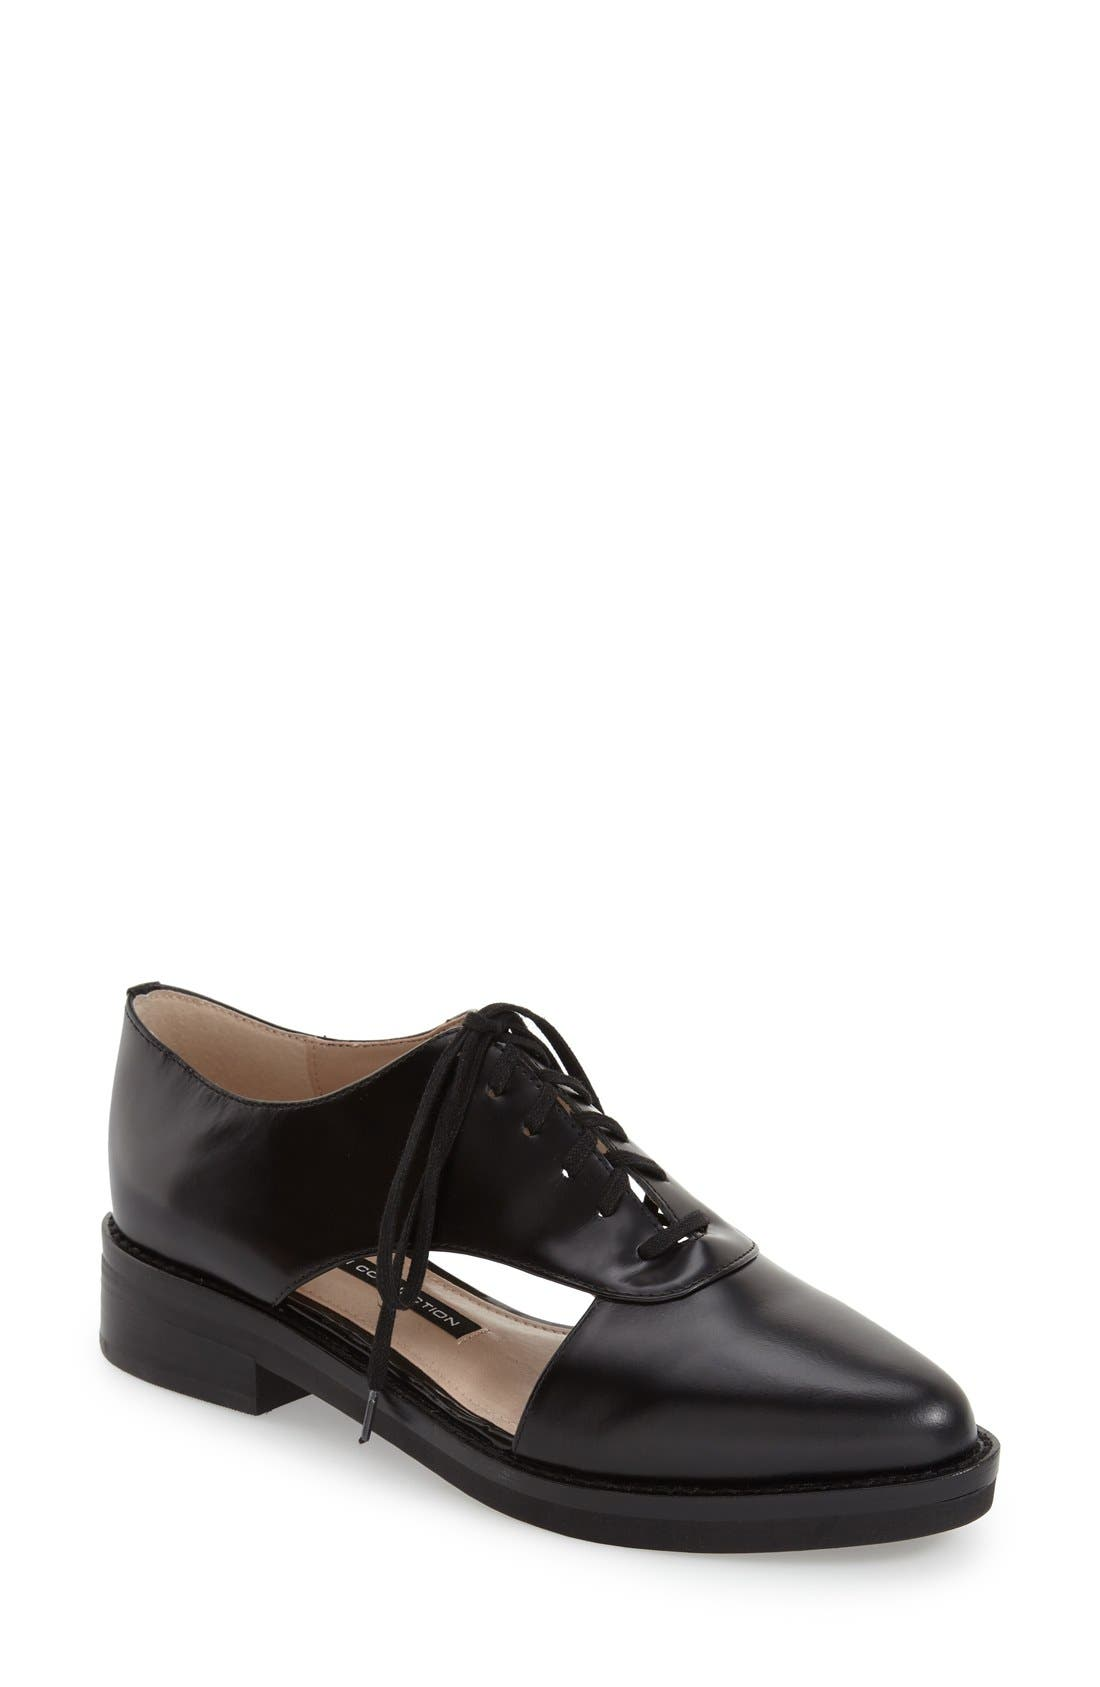 'Mazin' Oxford,                             Main thumbnail 1, color,                             Black Leather